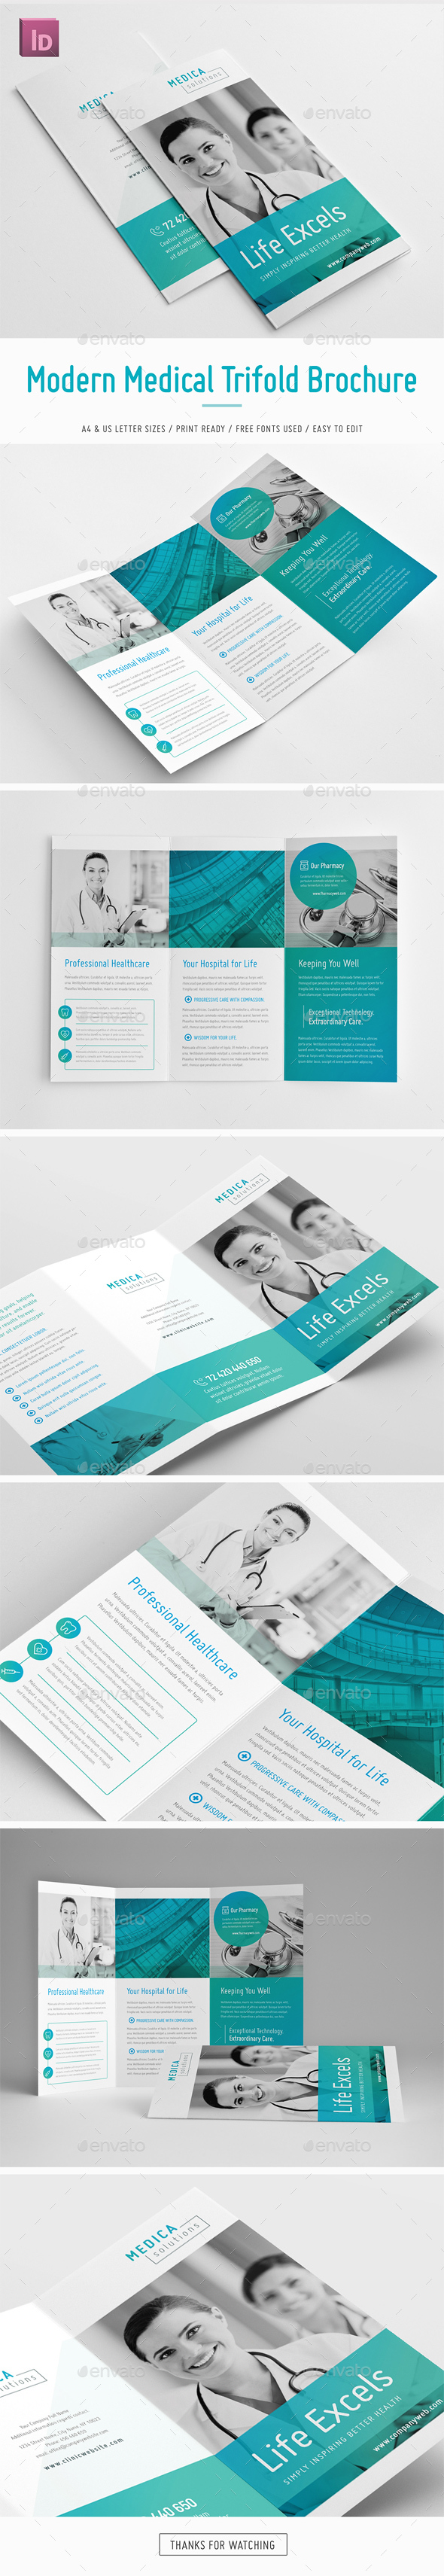 Modern Medical Trifold Brochure - Brochures Print Templates